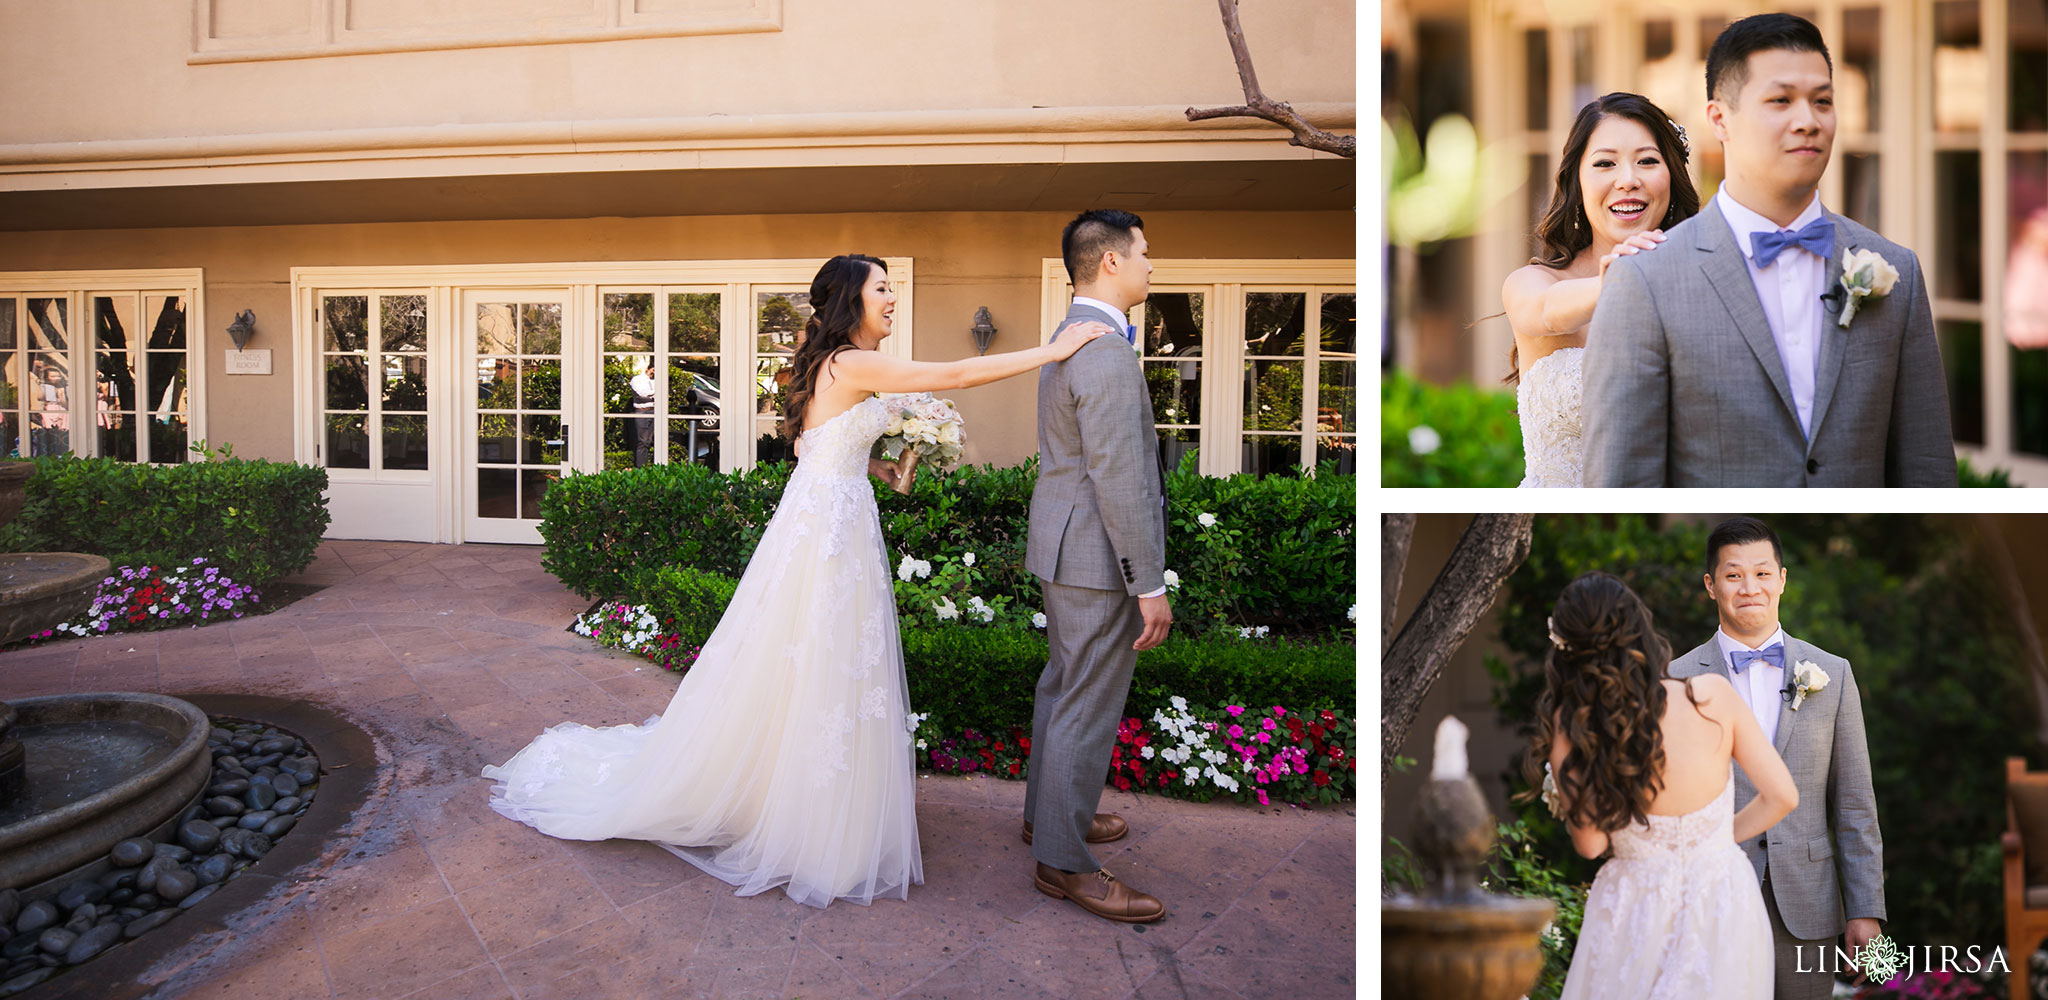 010 surf and sand resort laguna beach wedding photography